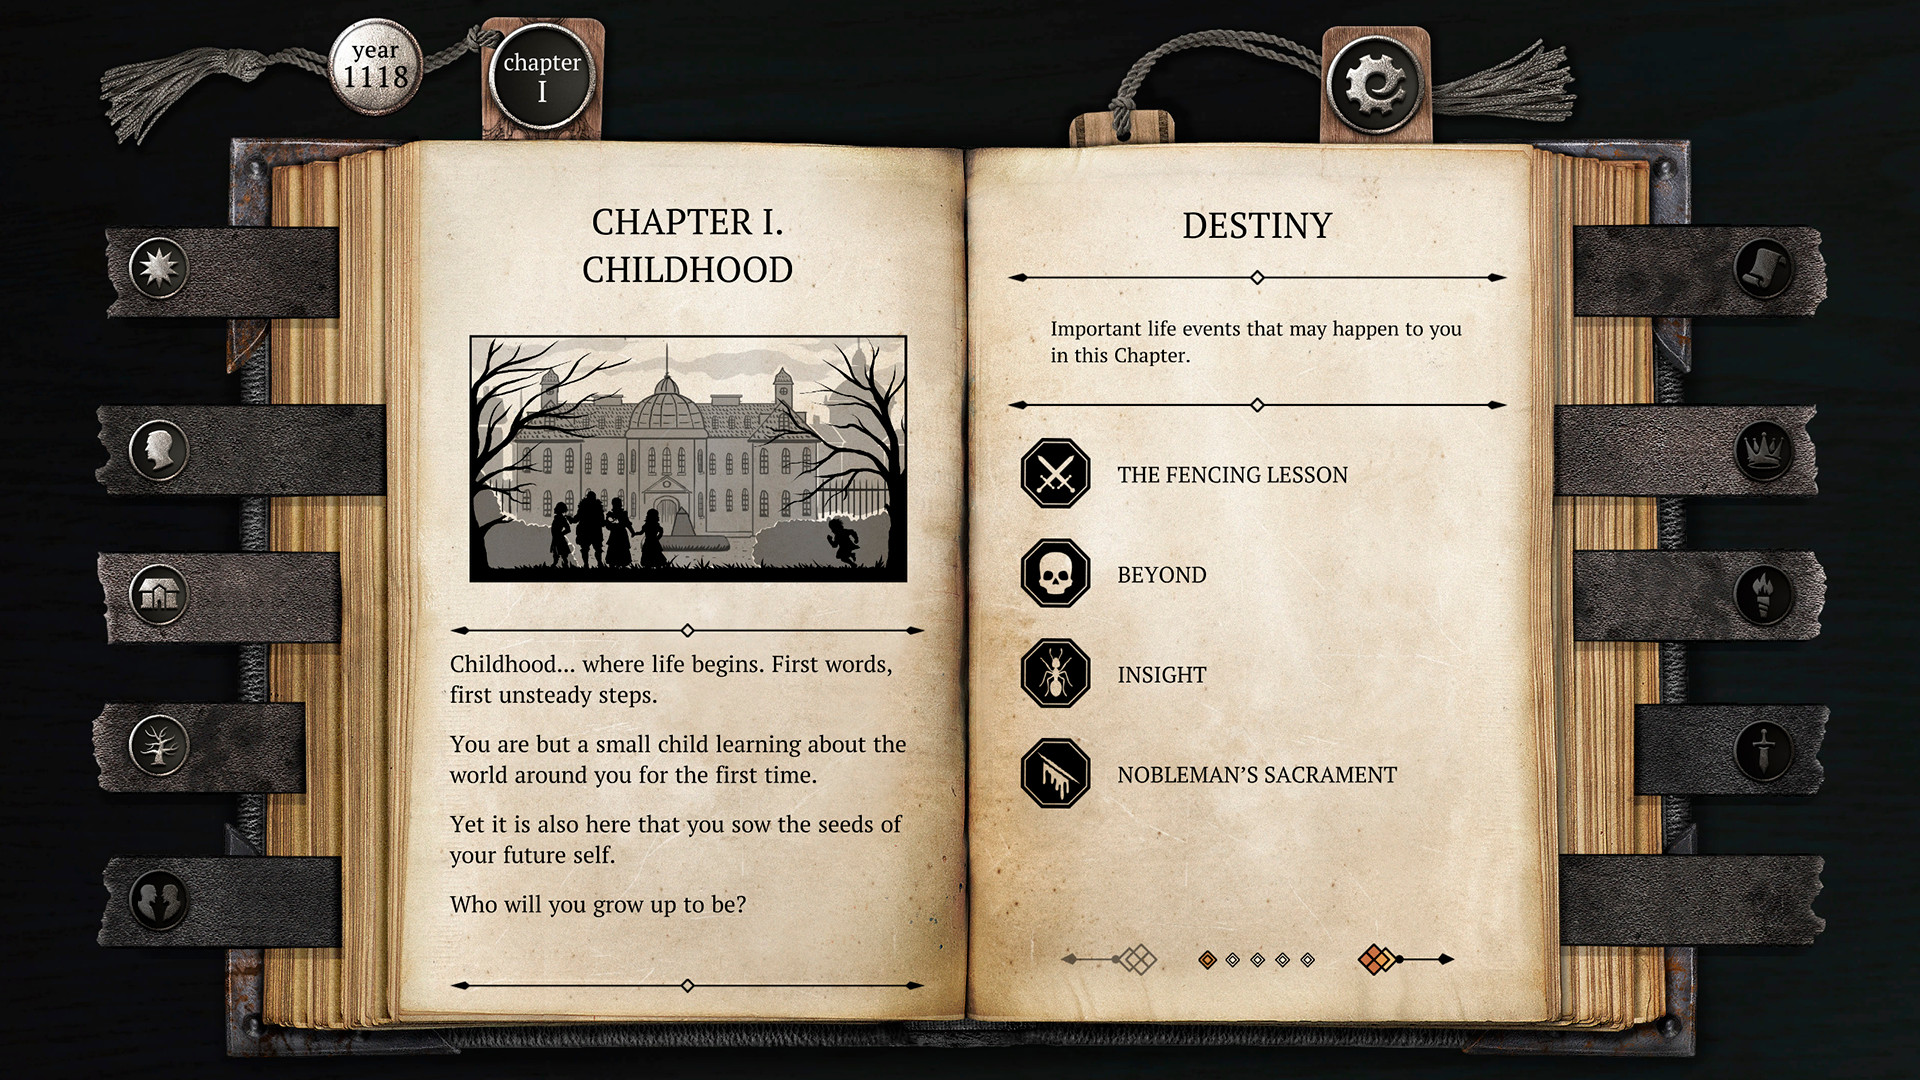 Gameplay is charted via pages in a book in The Life and Suffering of Sir Brante.